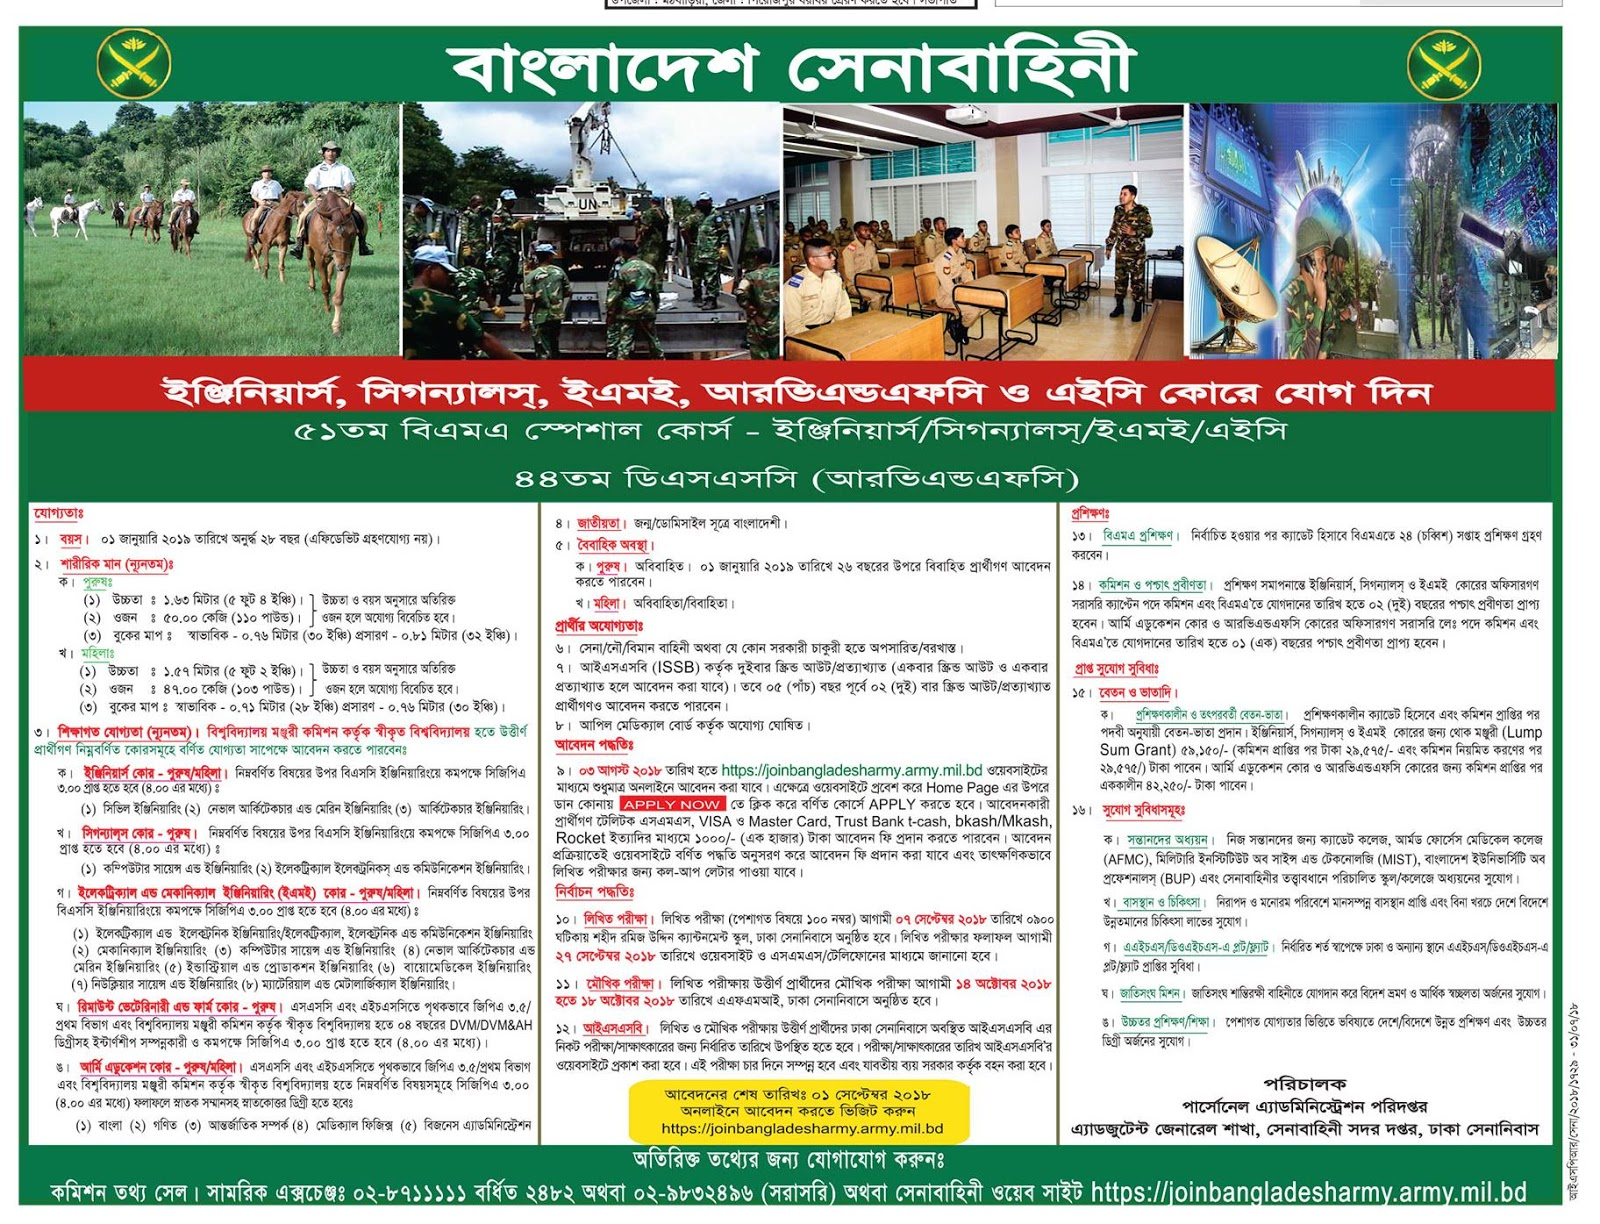 Bangladesh Army 51ST BMA special Course Engineers, Signal, EME and AC and 44ST DSSC (RV & FC) Course Cadet Recruitment Circular 2018